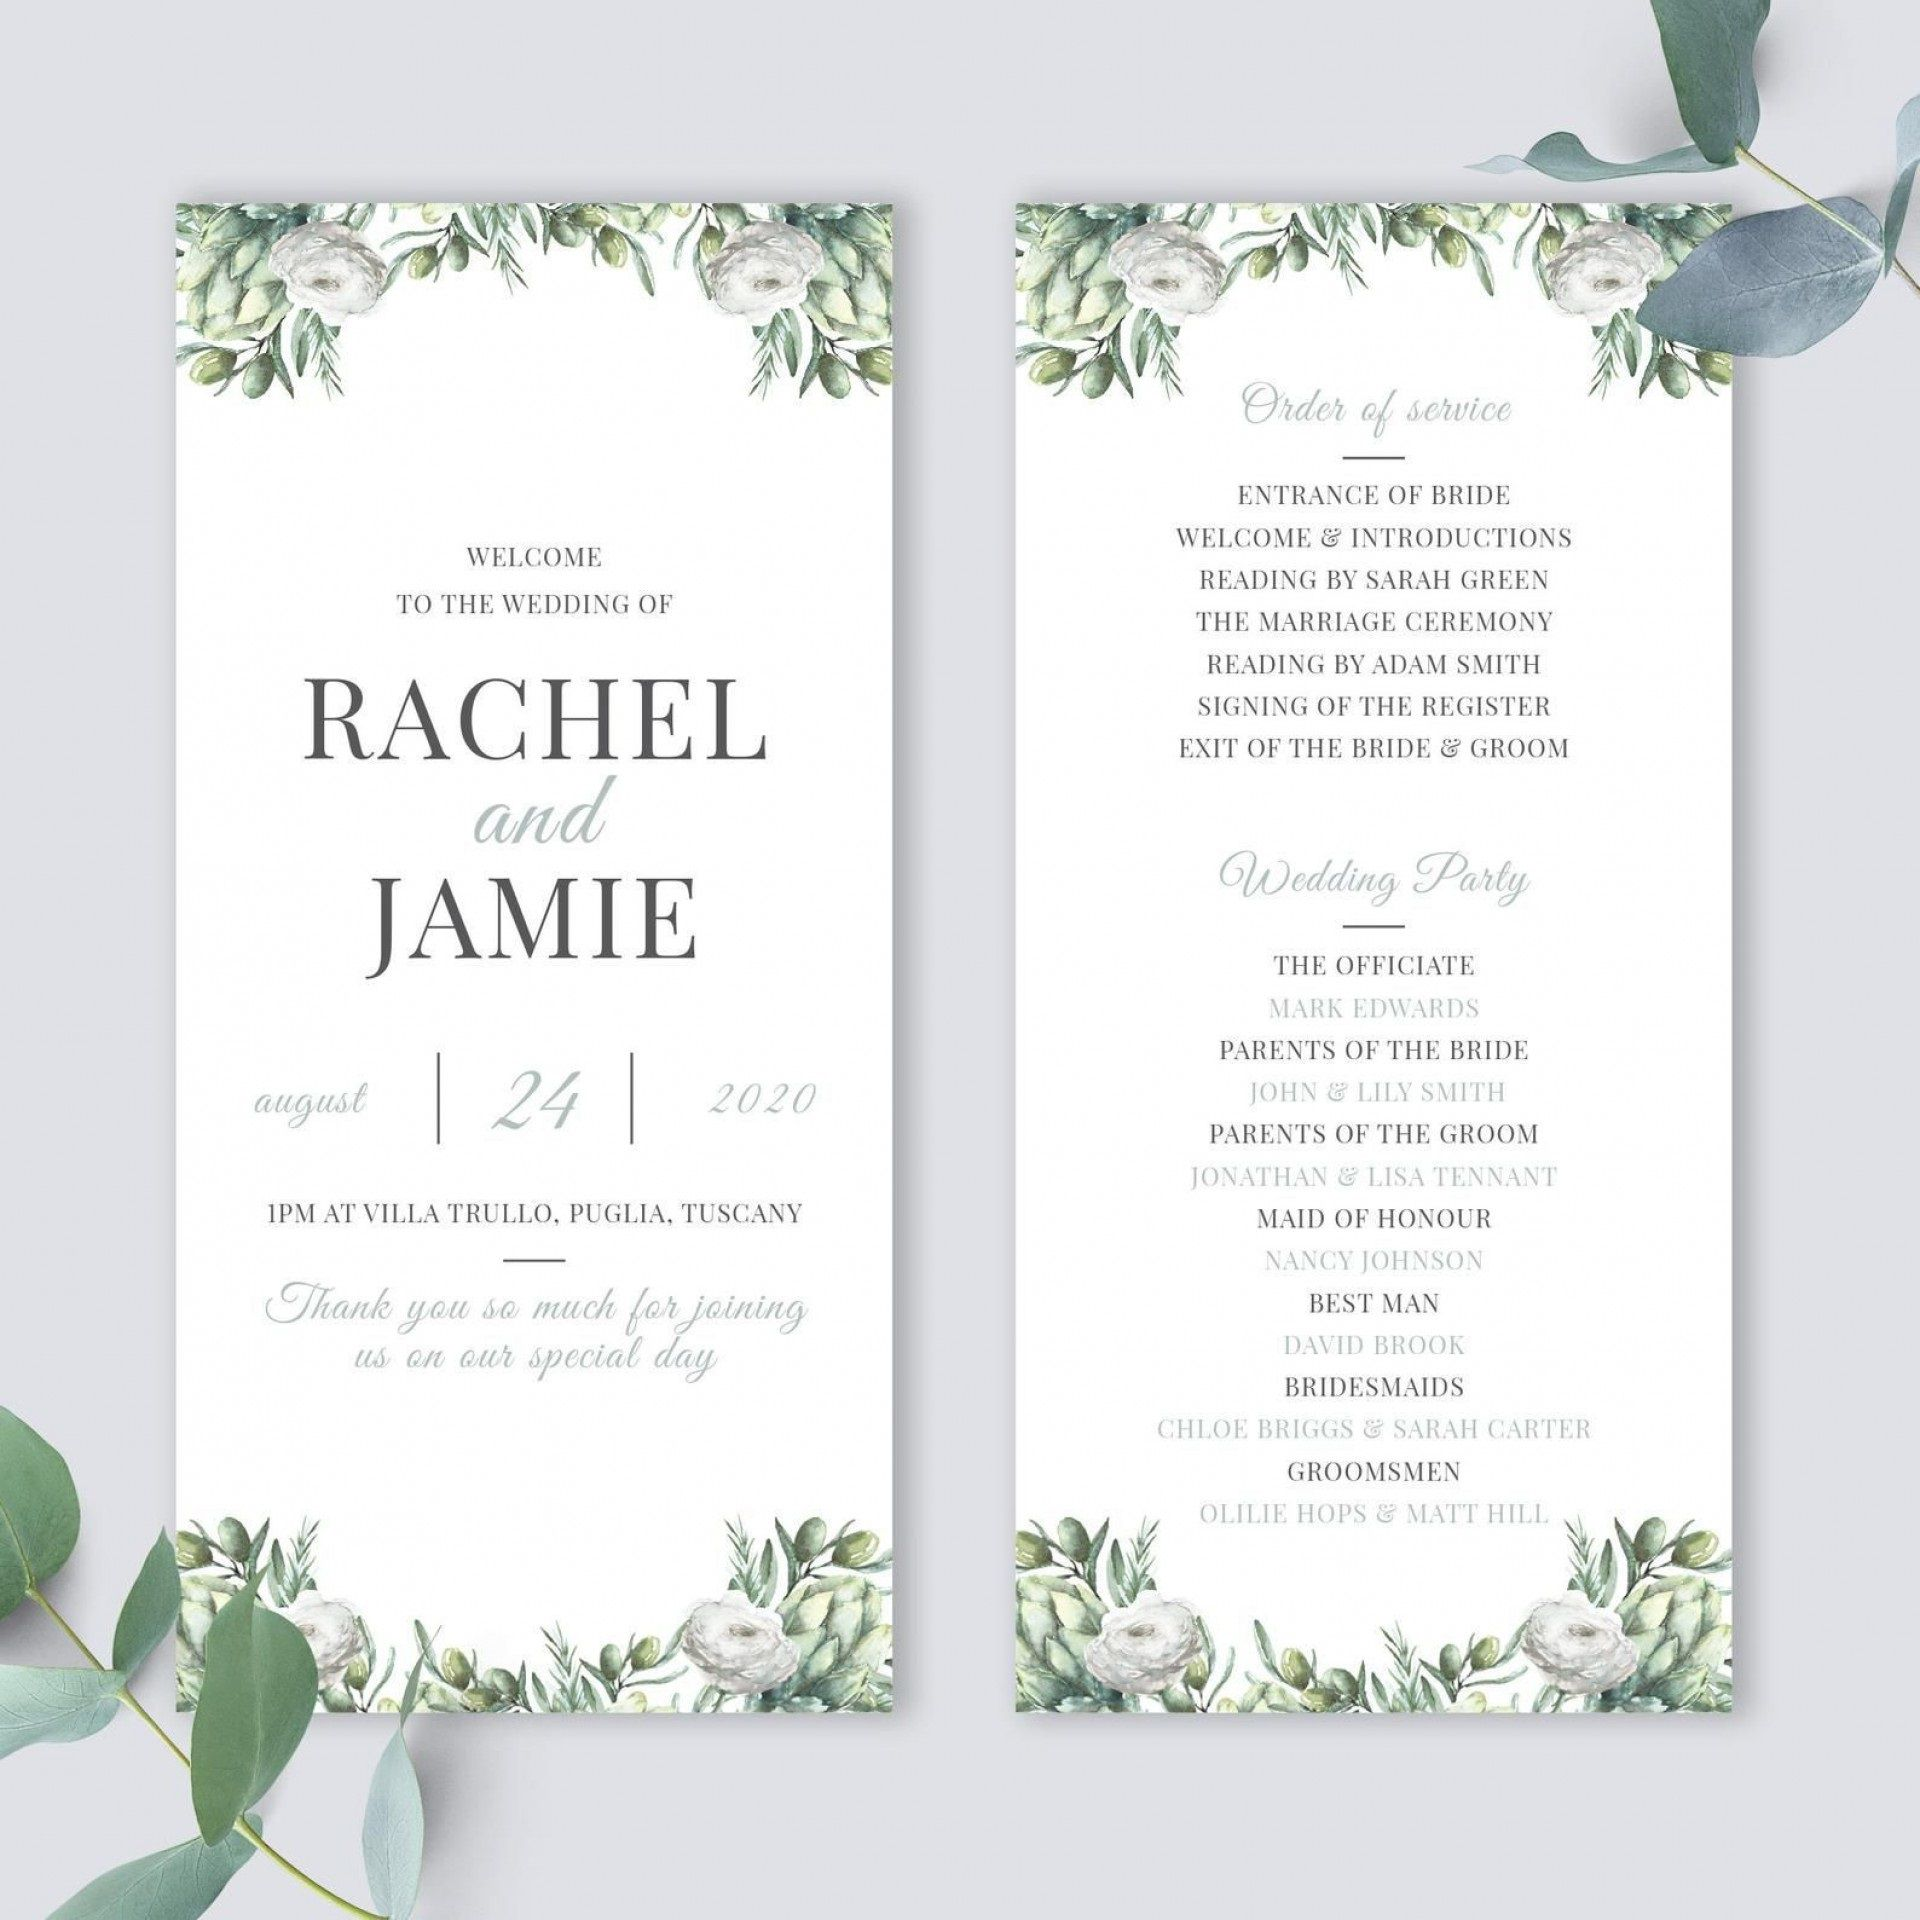 010 Best Wedding Order Of Service Template Word Highest Quality  Free MicrosoftFull